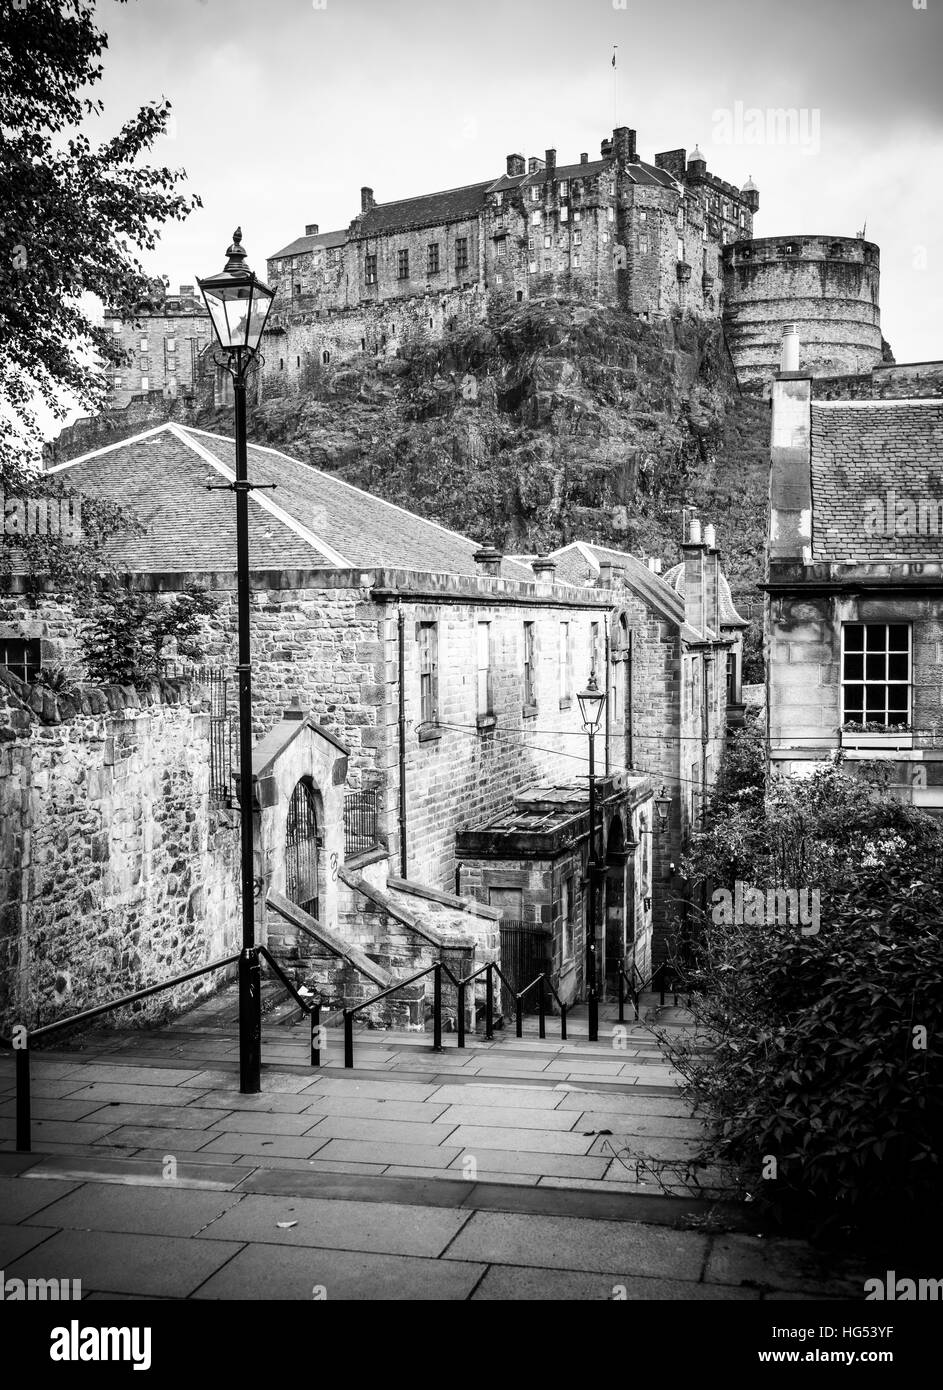 Monochrome view of Edinburgh Castle from steps below Heriot Place - Stock Image